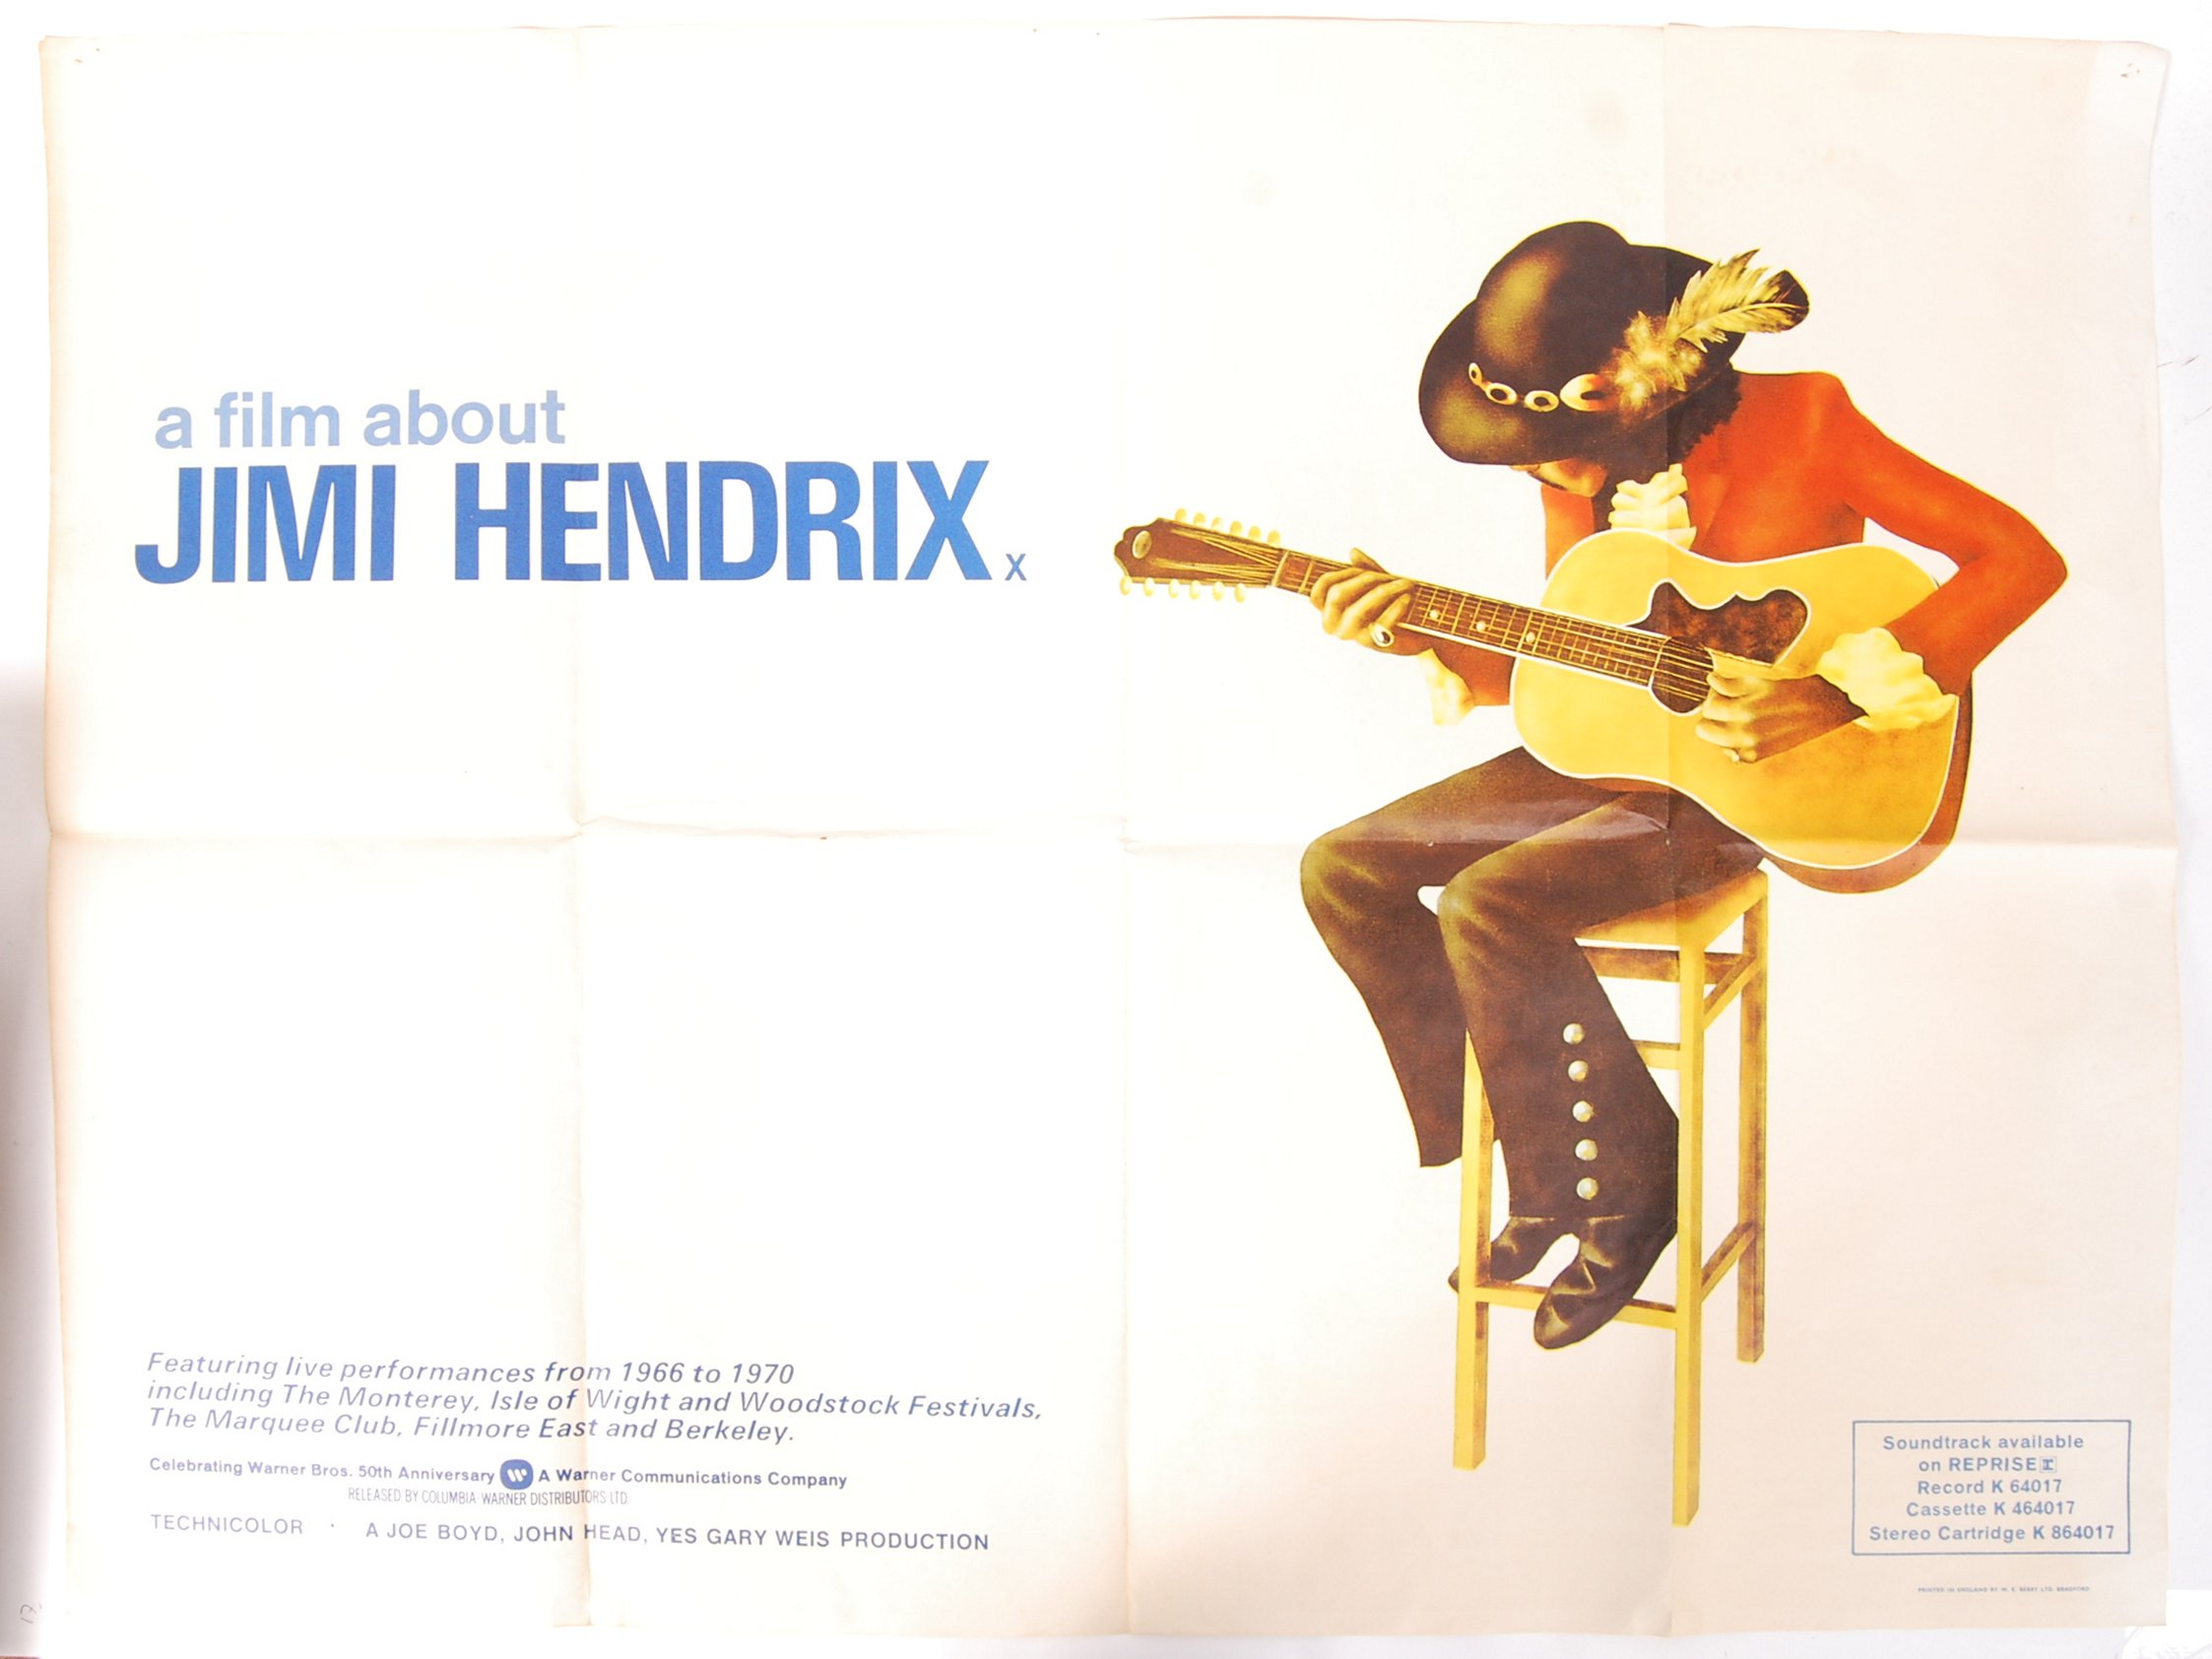 Lot 11 - ' A FILM ABOUT JIMI HENDRIX ' 1973 ORIGINAL CINEMA UK QUAD MOVIE POSTER